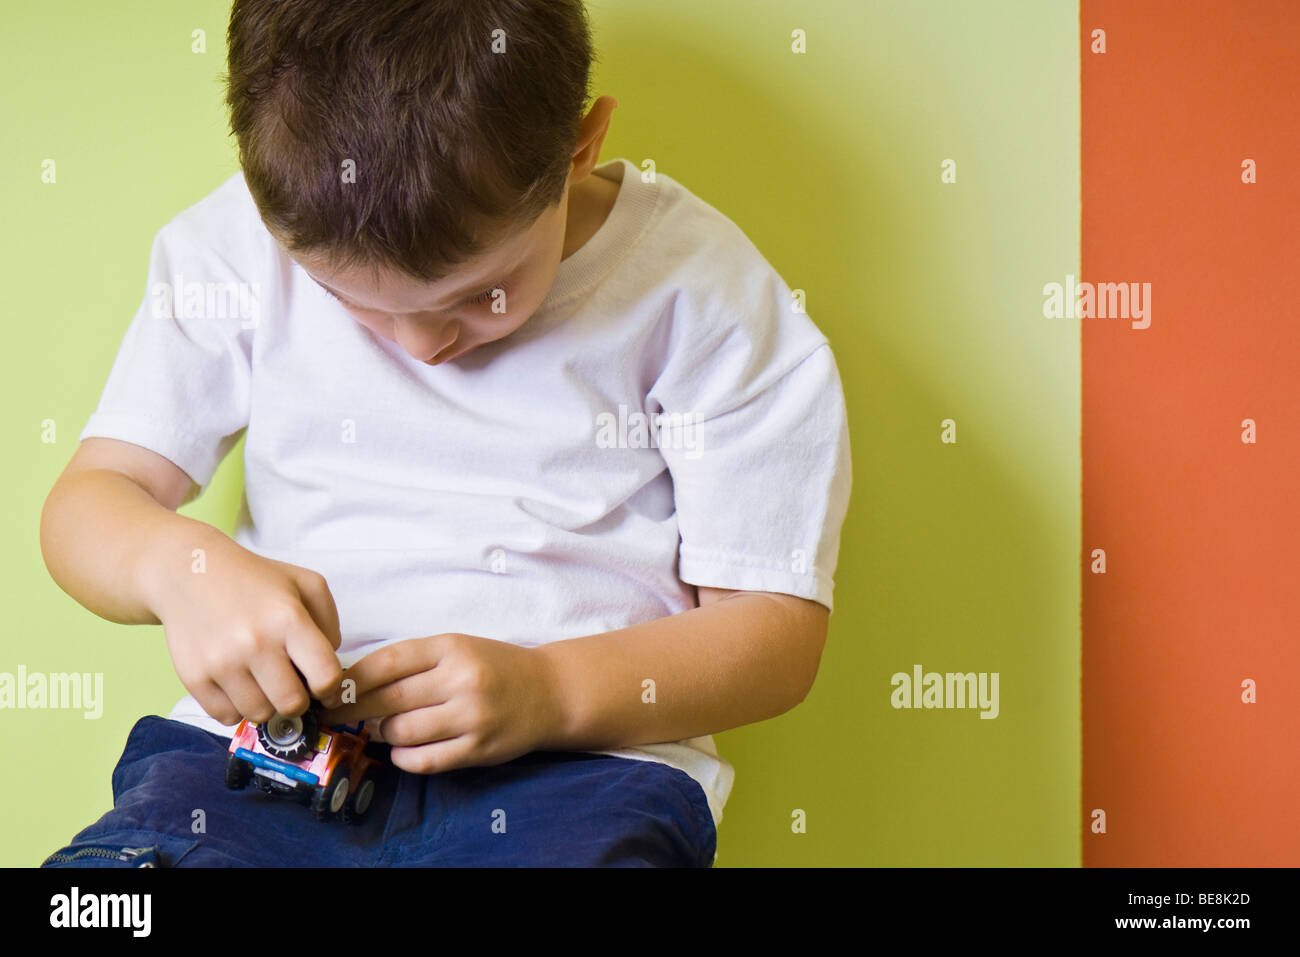 Little boy playing with toy car Stock Photo